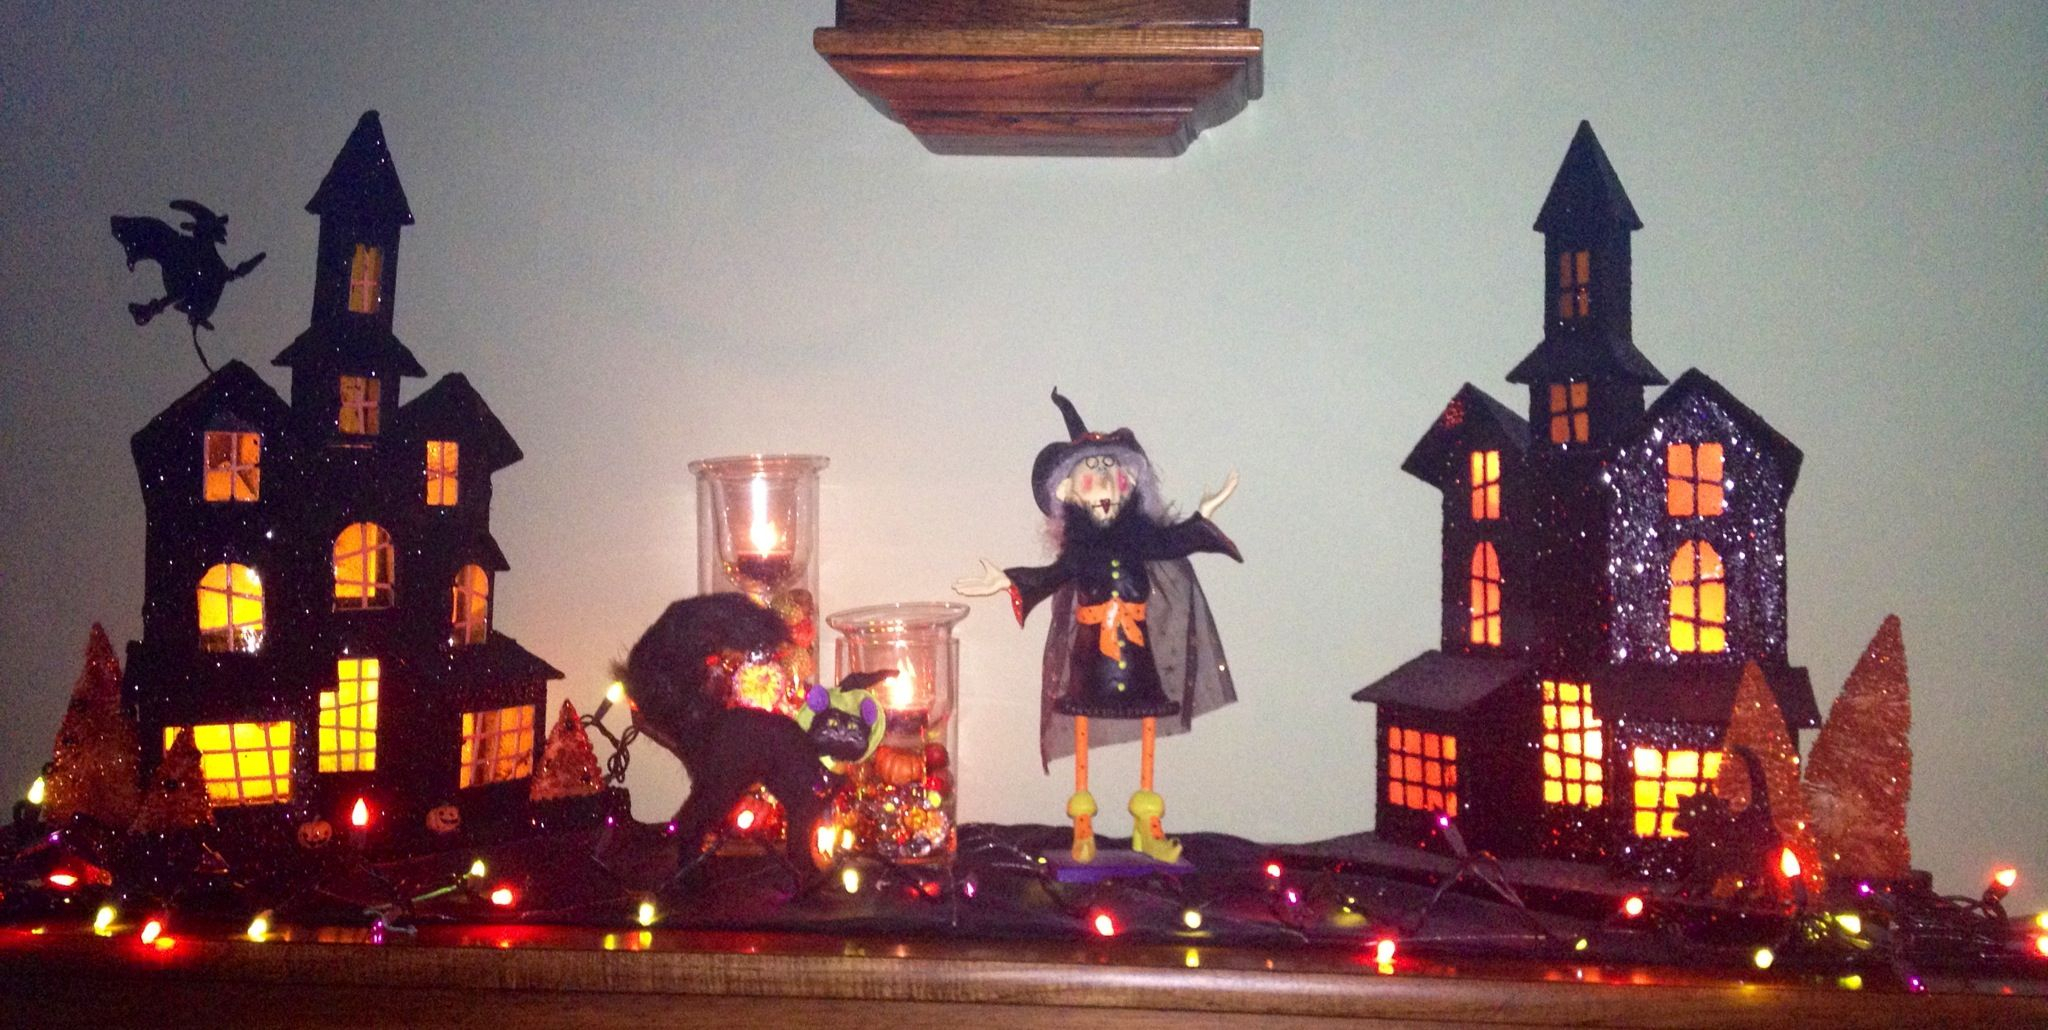 Putz Halloween decorations haunted house little village - halloween houses decorated